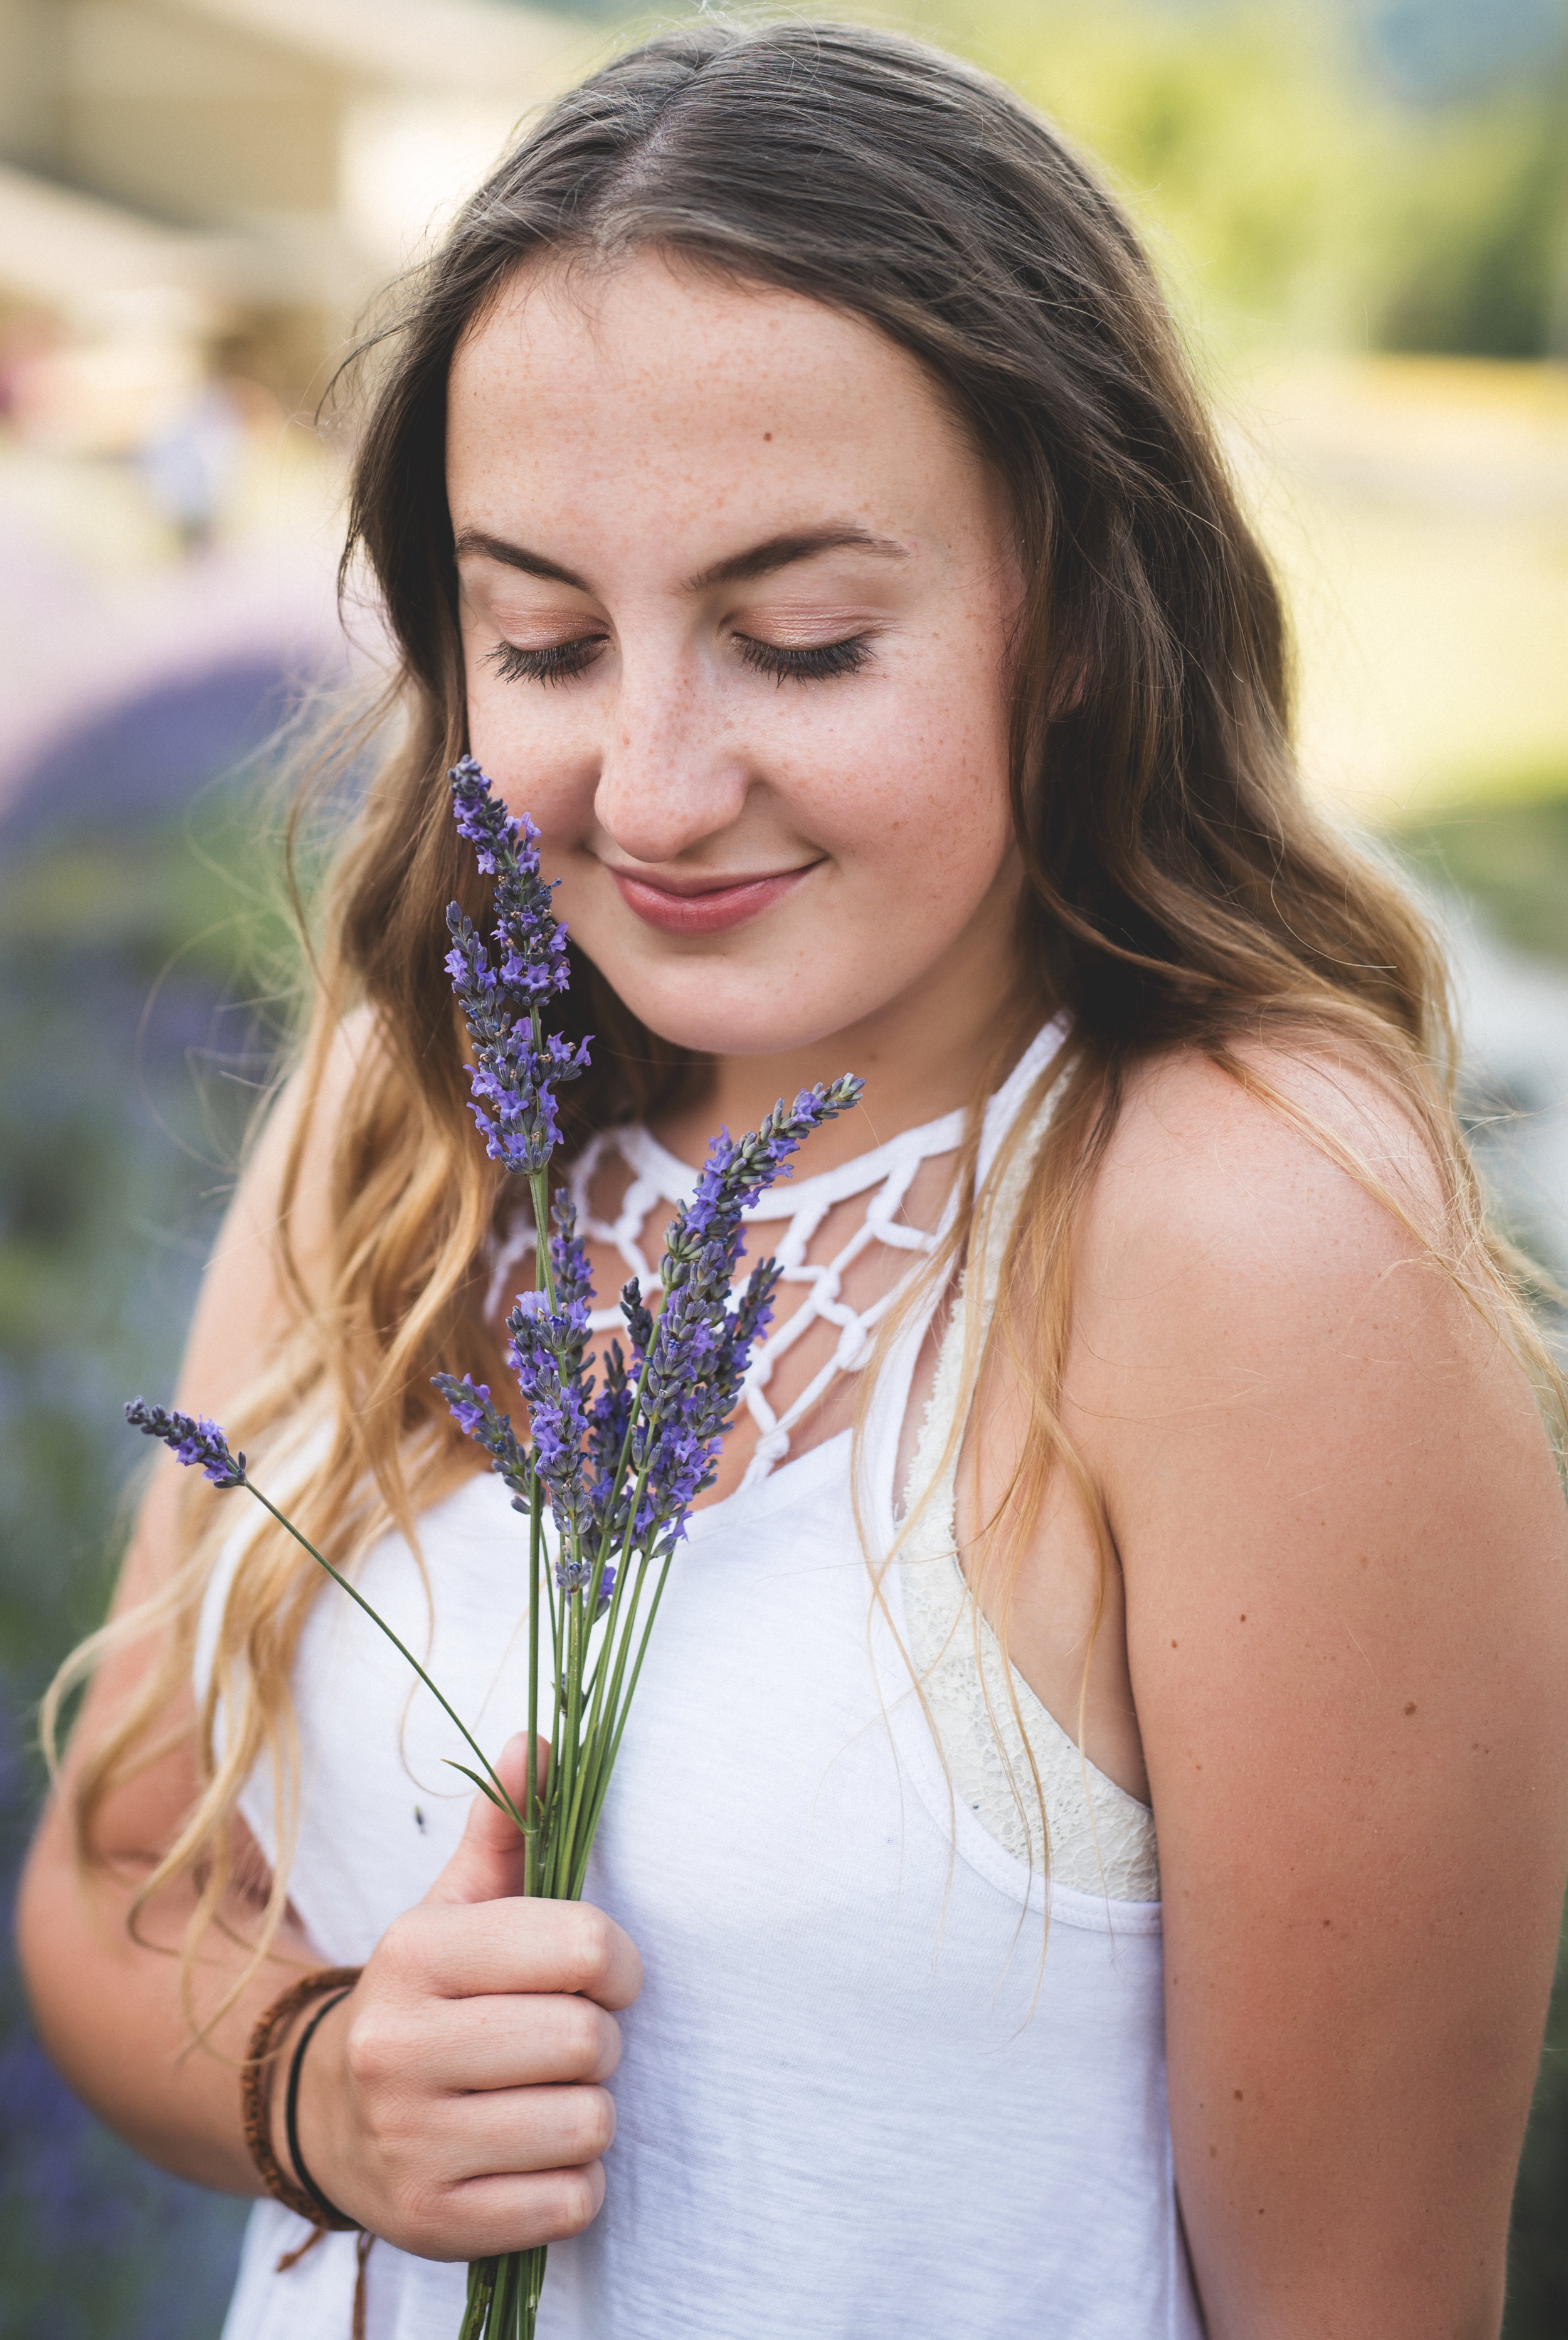 kristin grover images, snofalls lavender, fall city washington, ana high school senior photos, smelling lavender